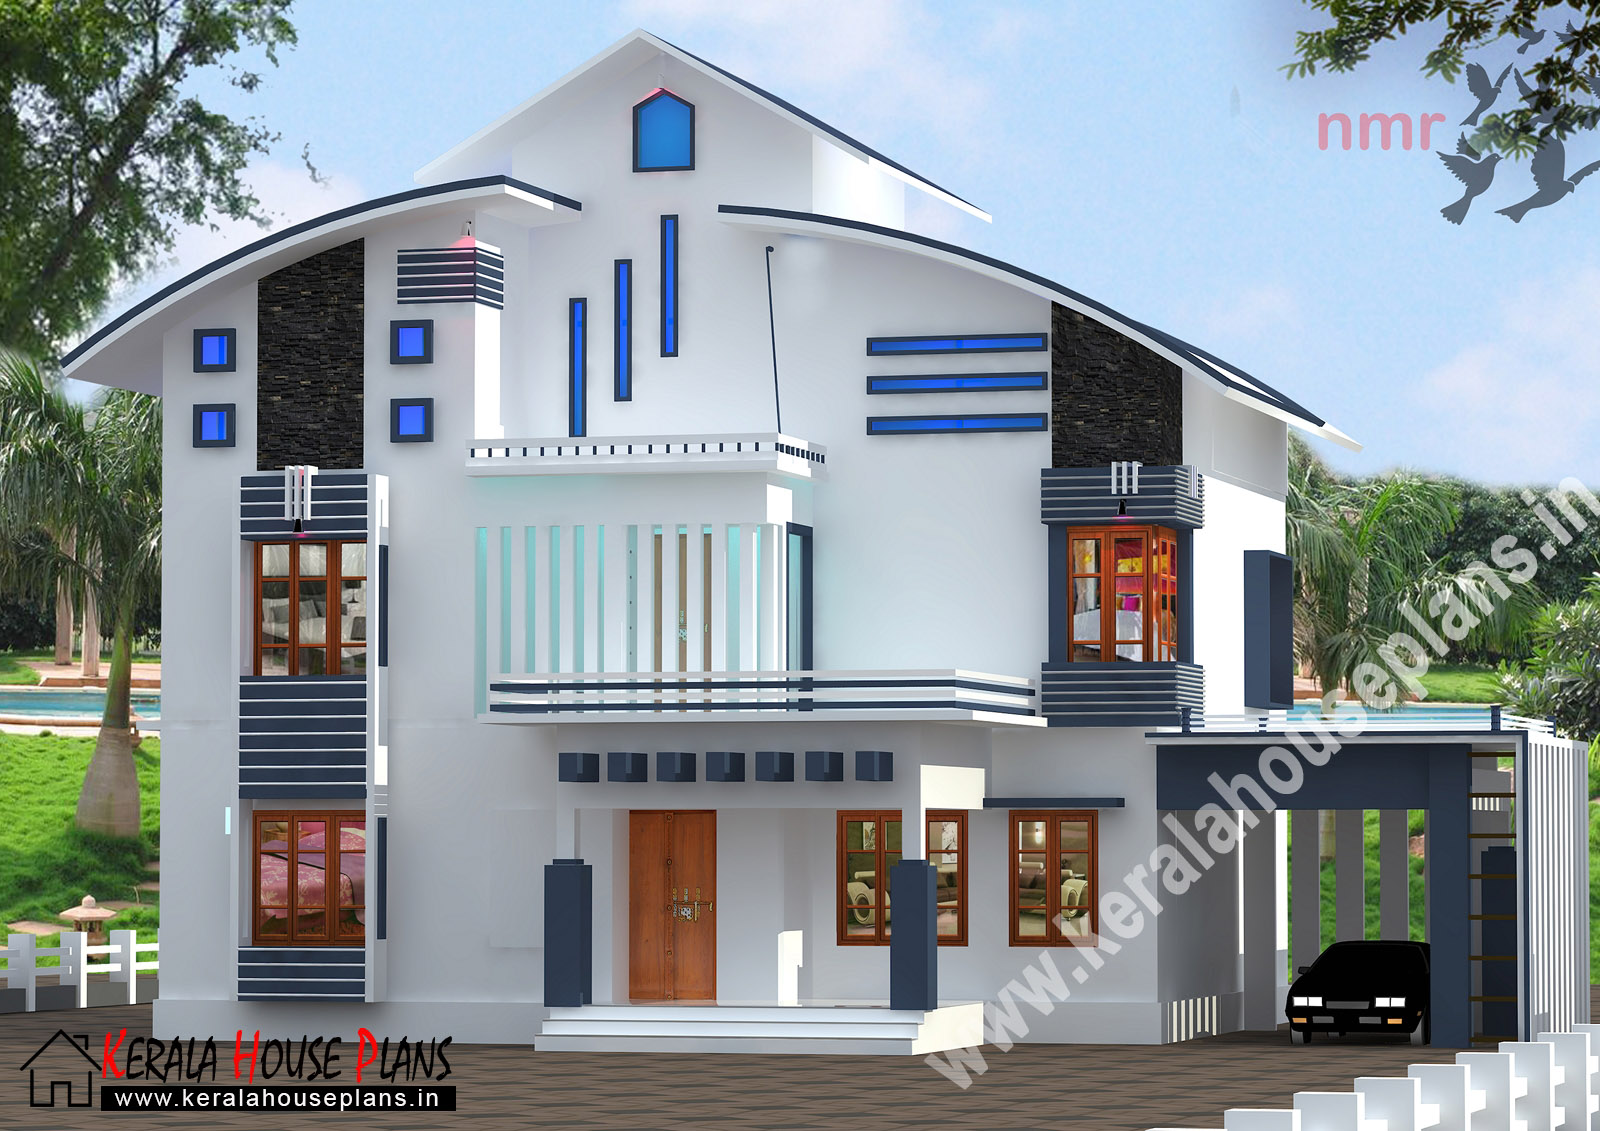 Kerala house plans and designs for House plans in kerala